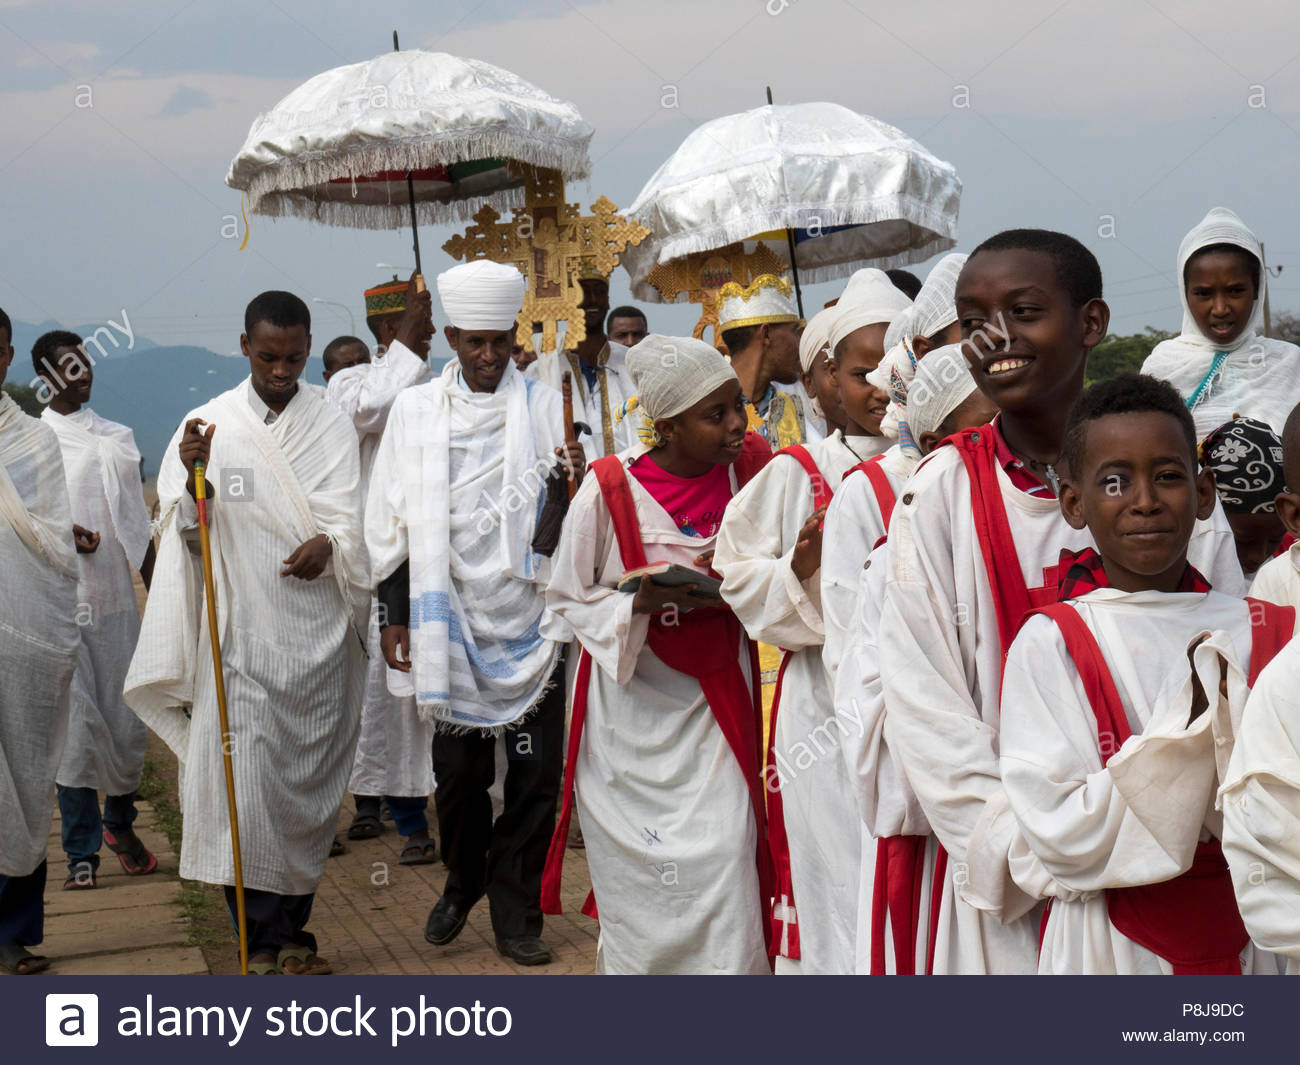 Procession at the Meskel Festival, Ethiopia - Stock Image